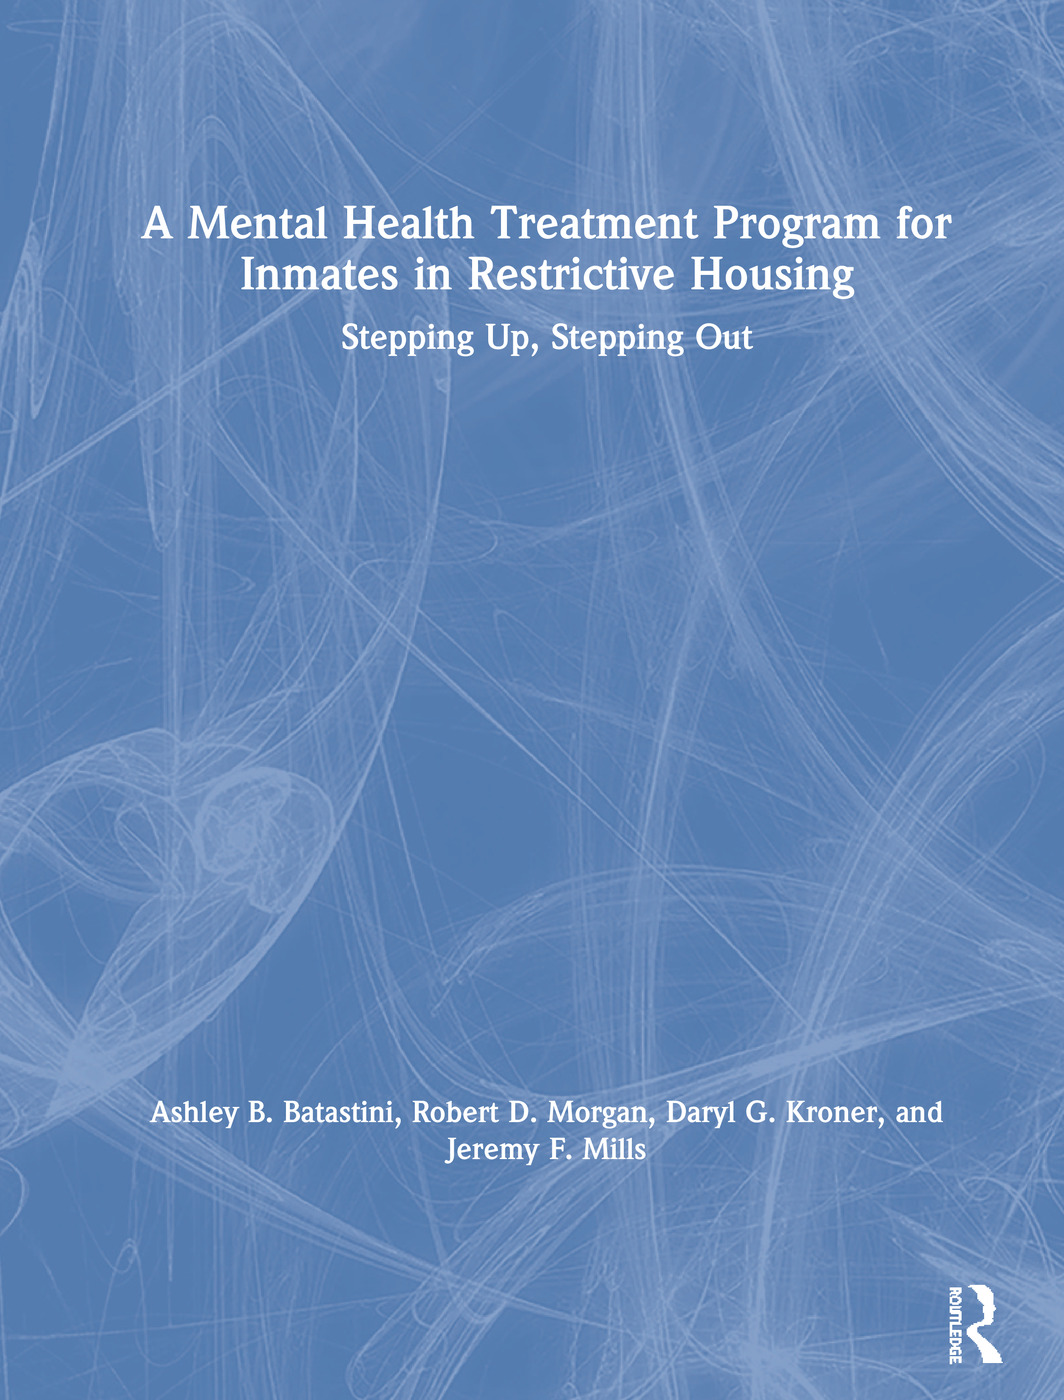 A Mental Health Treatment Program for Inmates in Restrictive Housing: Stepping Up, Stepping Out book cover